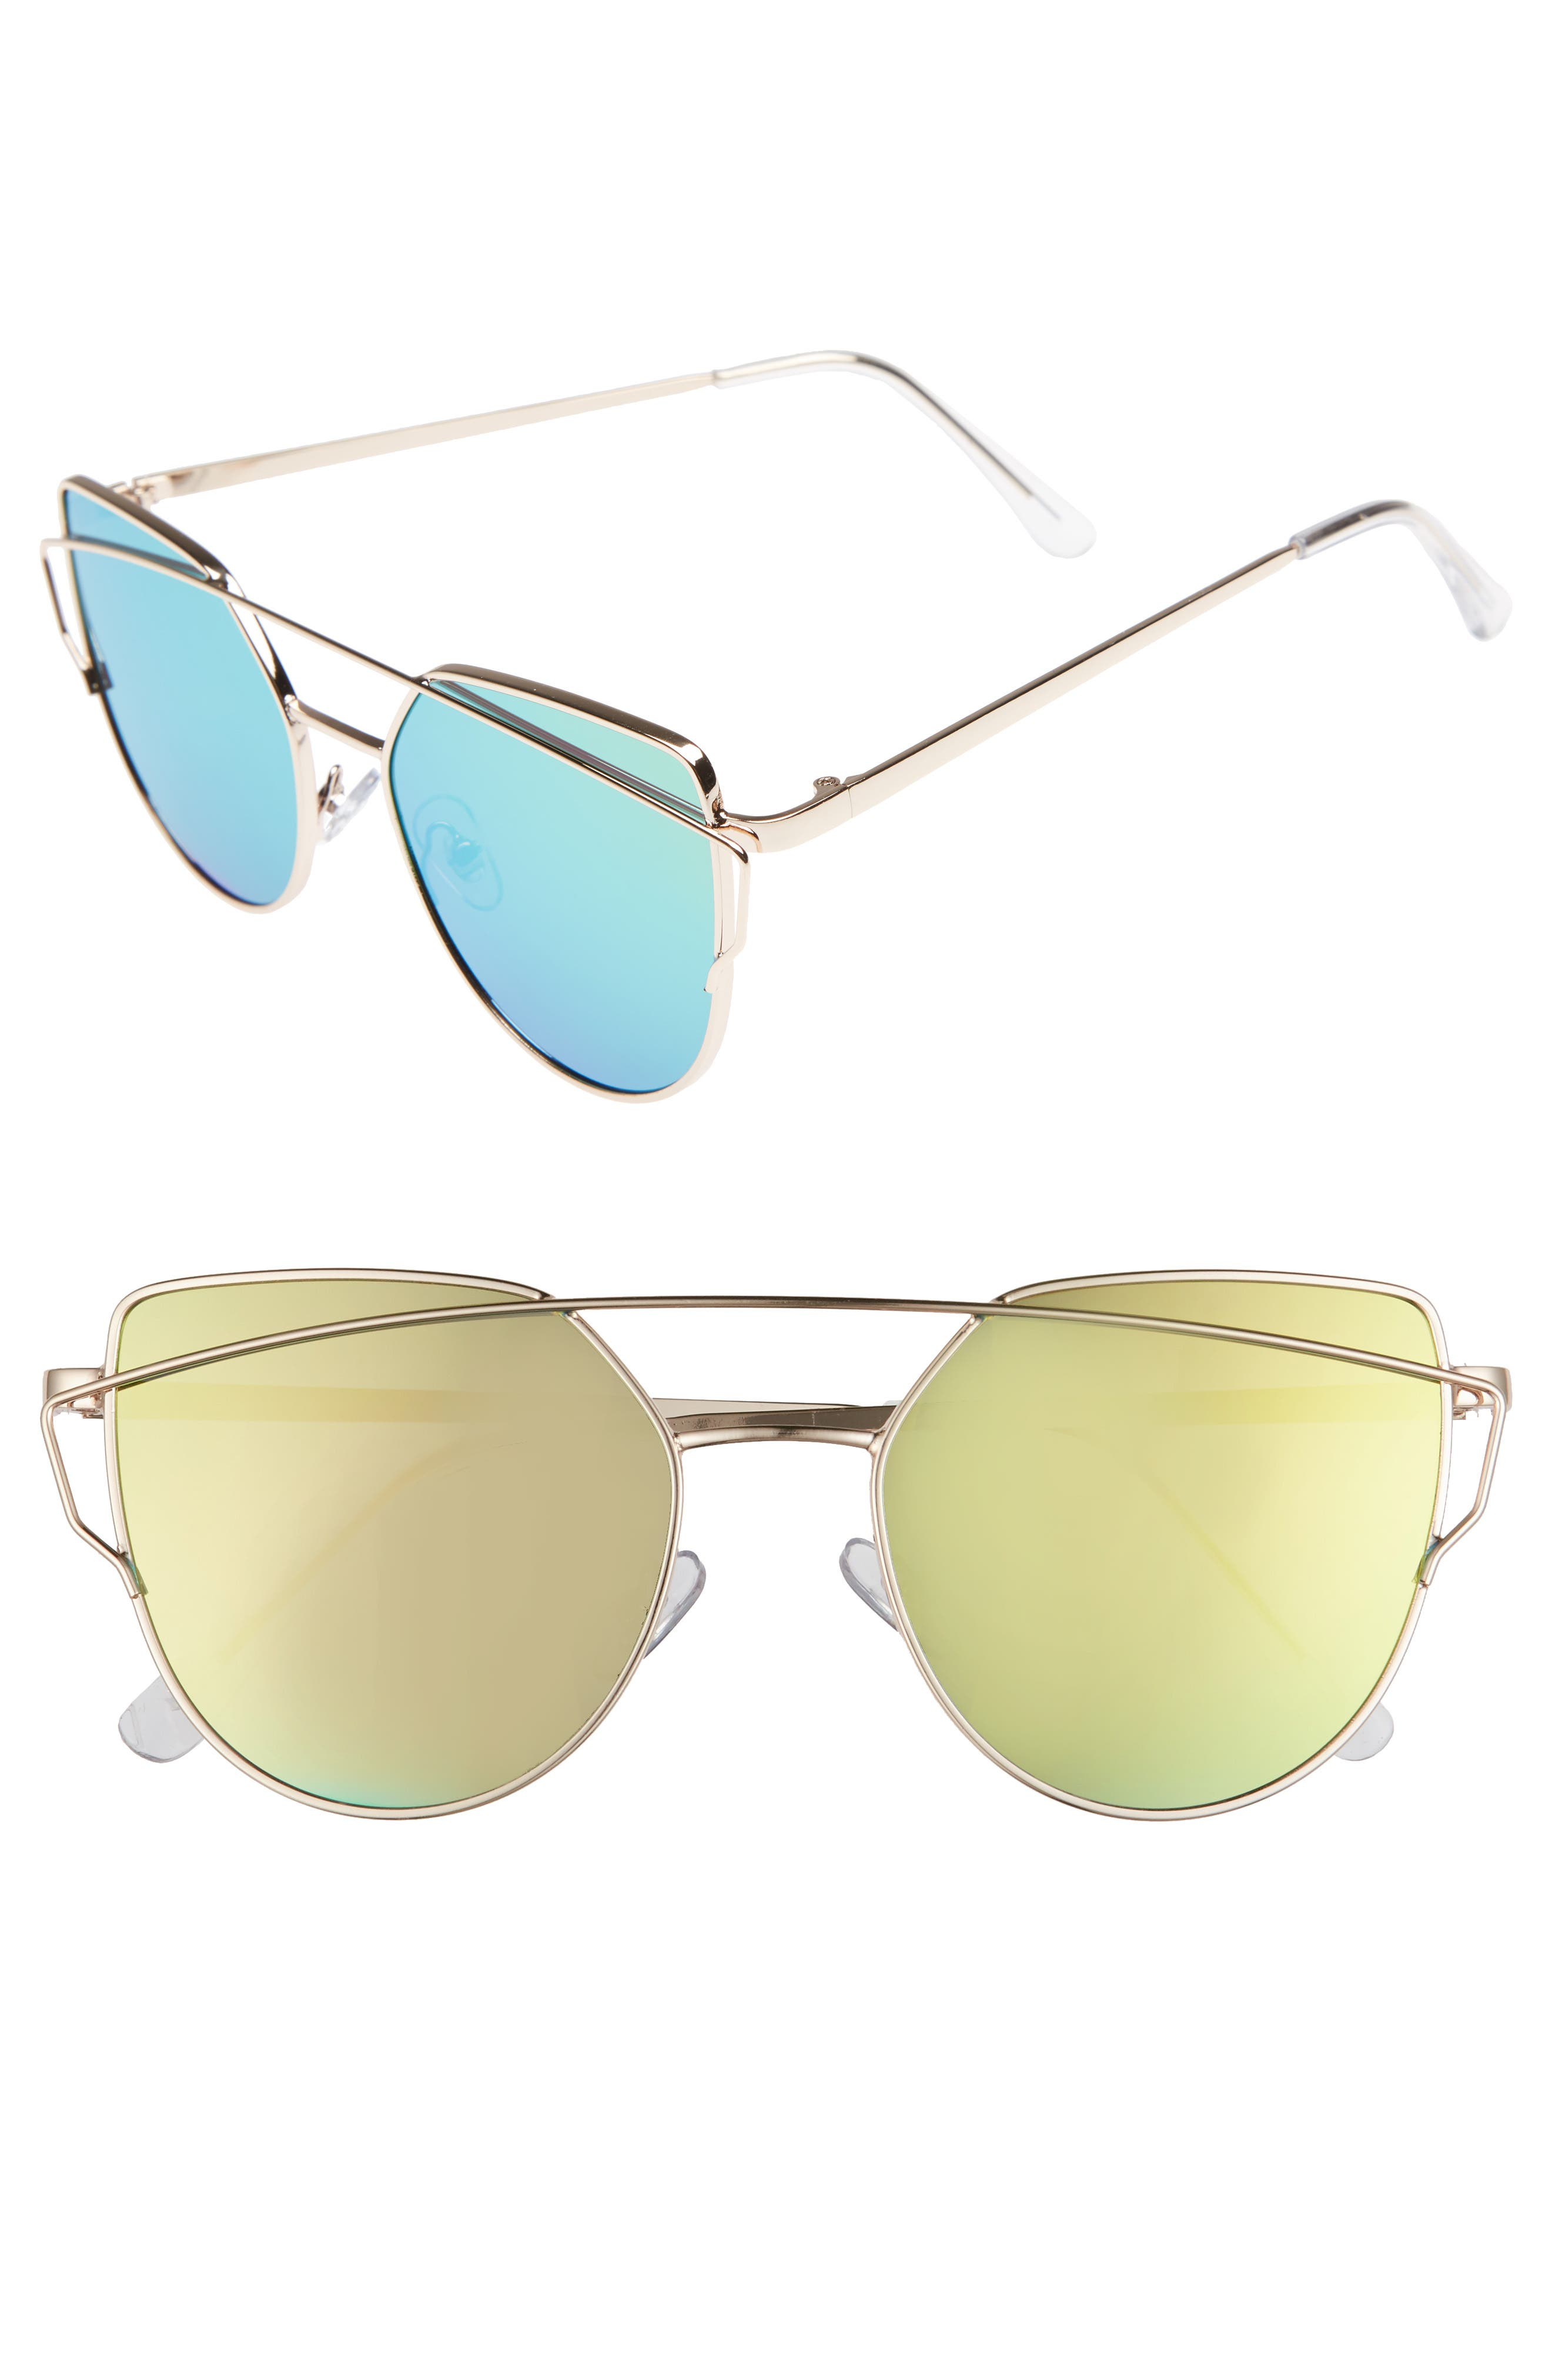 51mm Thin Brow Angular Aviator Sunglasses,                             Main thumbnail 6, color,